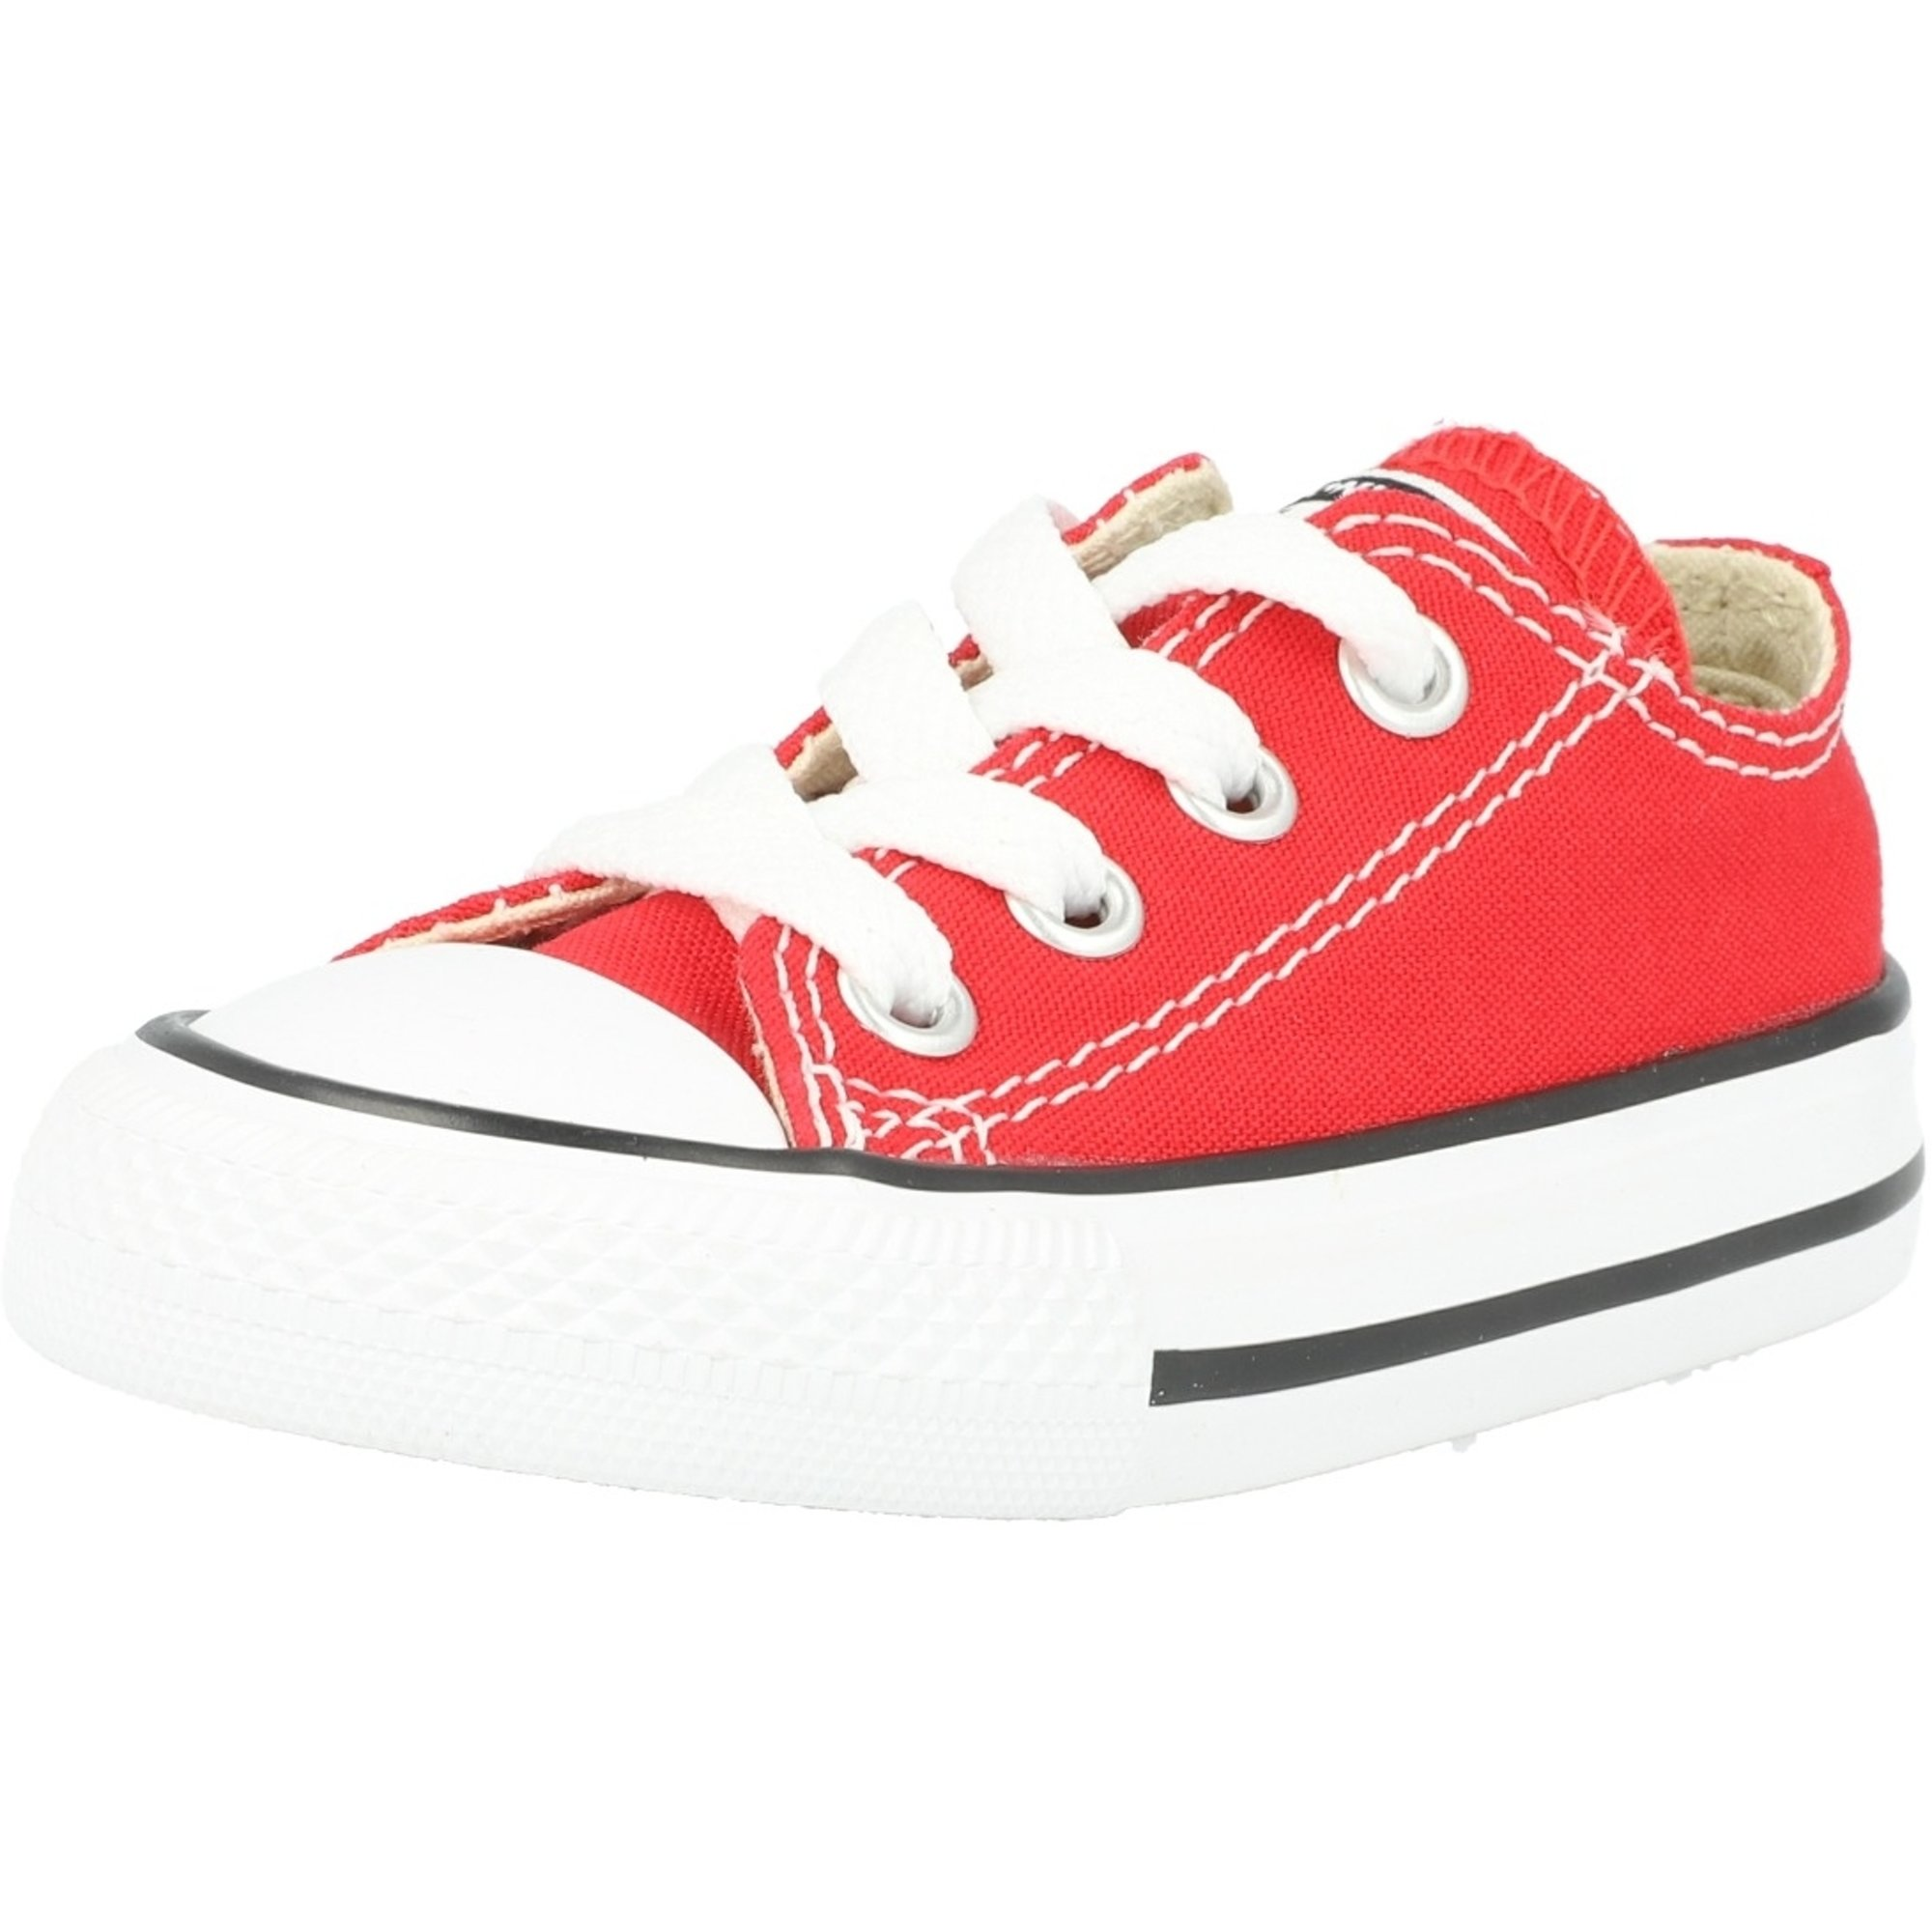 Star Ox Red Textile - Trainers Shoes